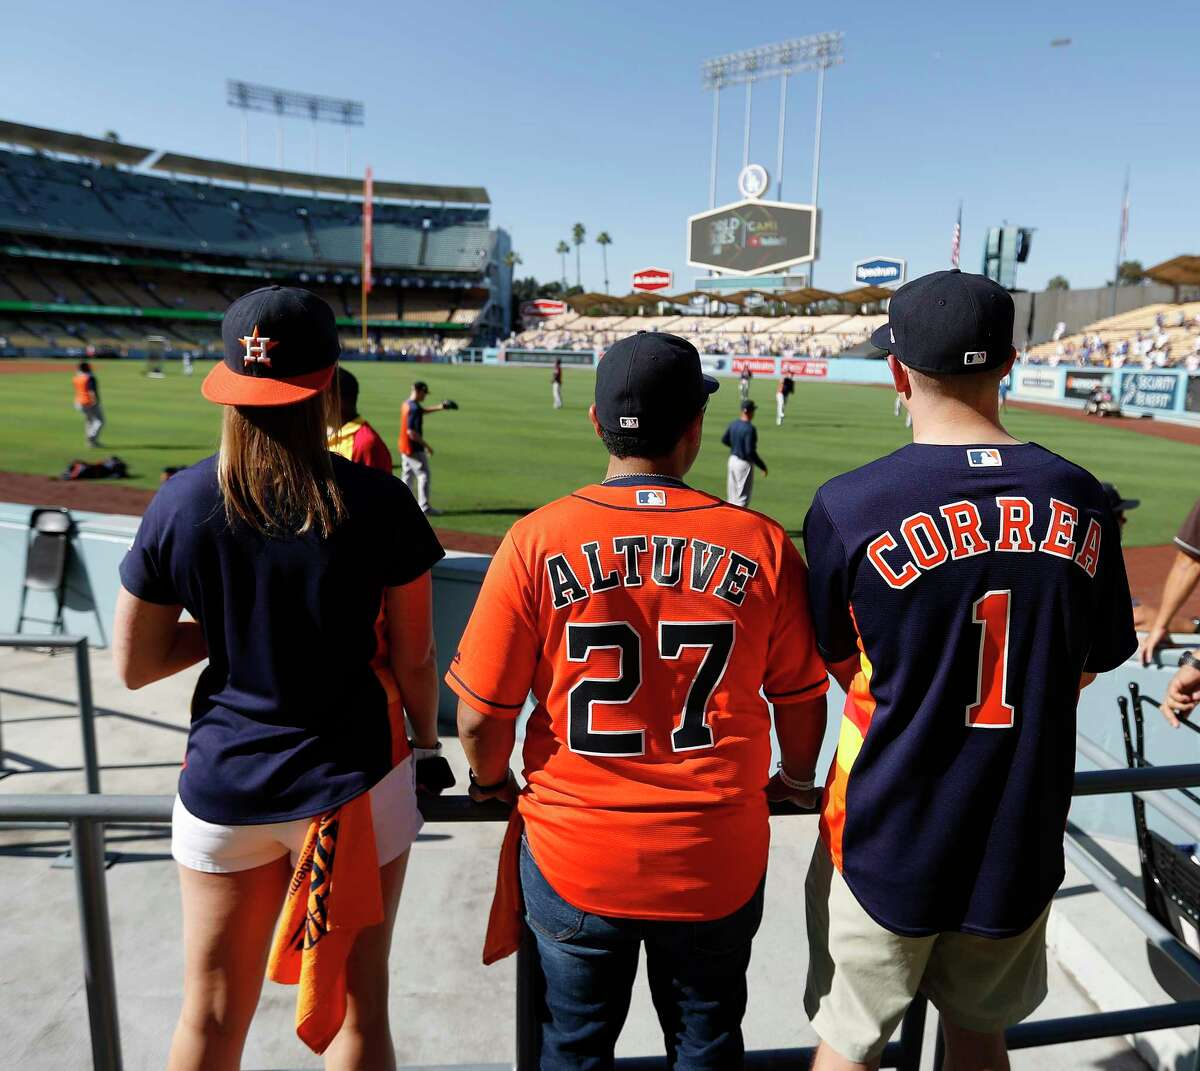 Houston Astros fans take in batting practice before the start of Game 2 of an MLB World Series at Dodger Stadium, Wednesday, Oct. 25, 2017, in Los Angeles.